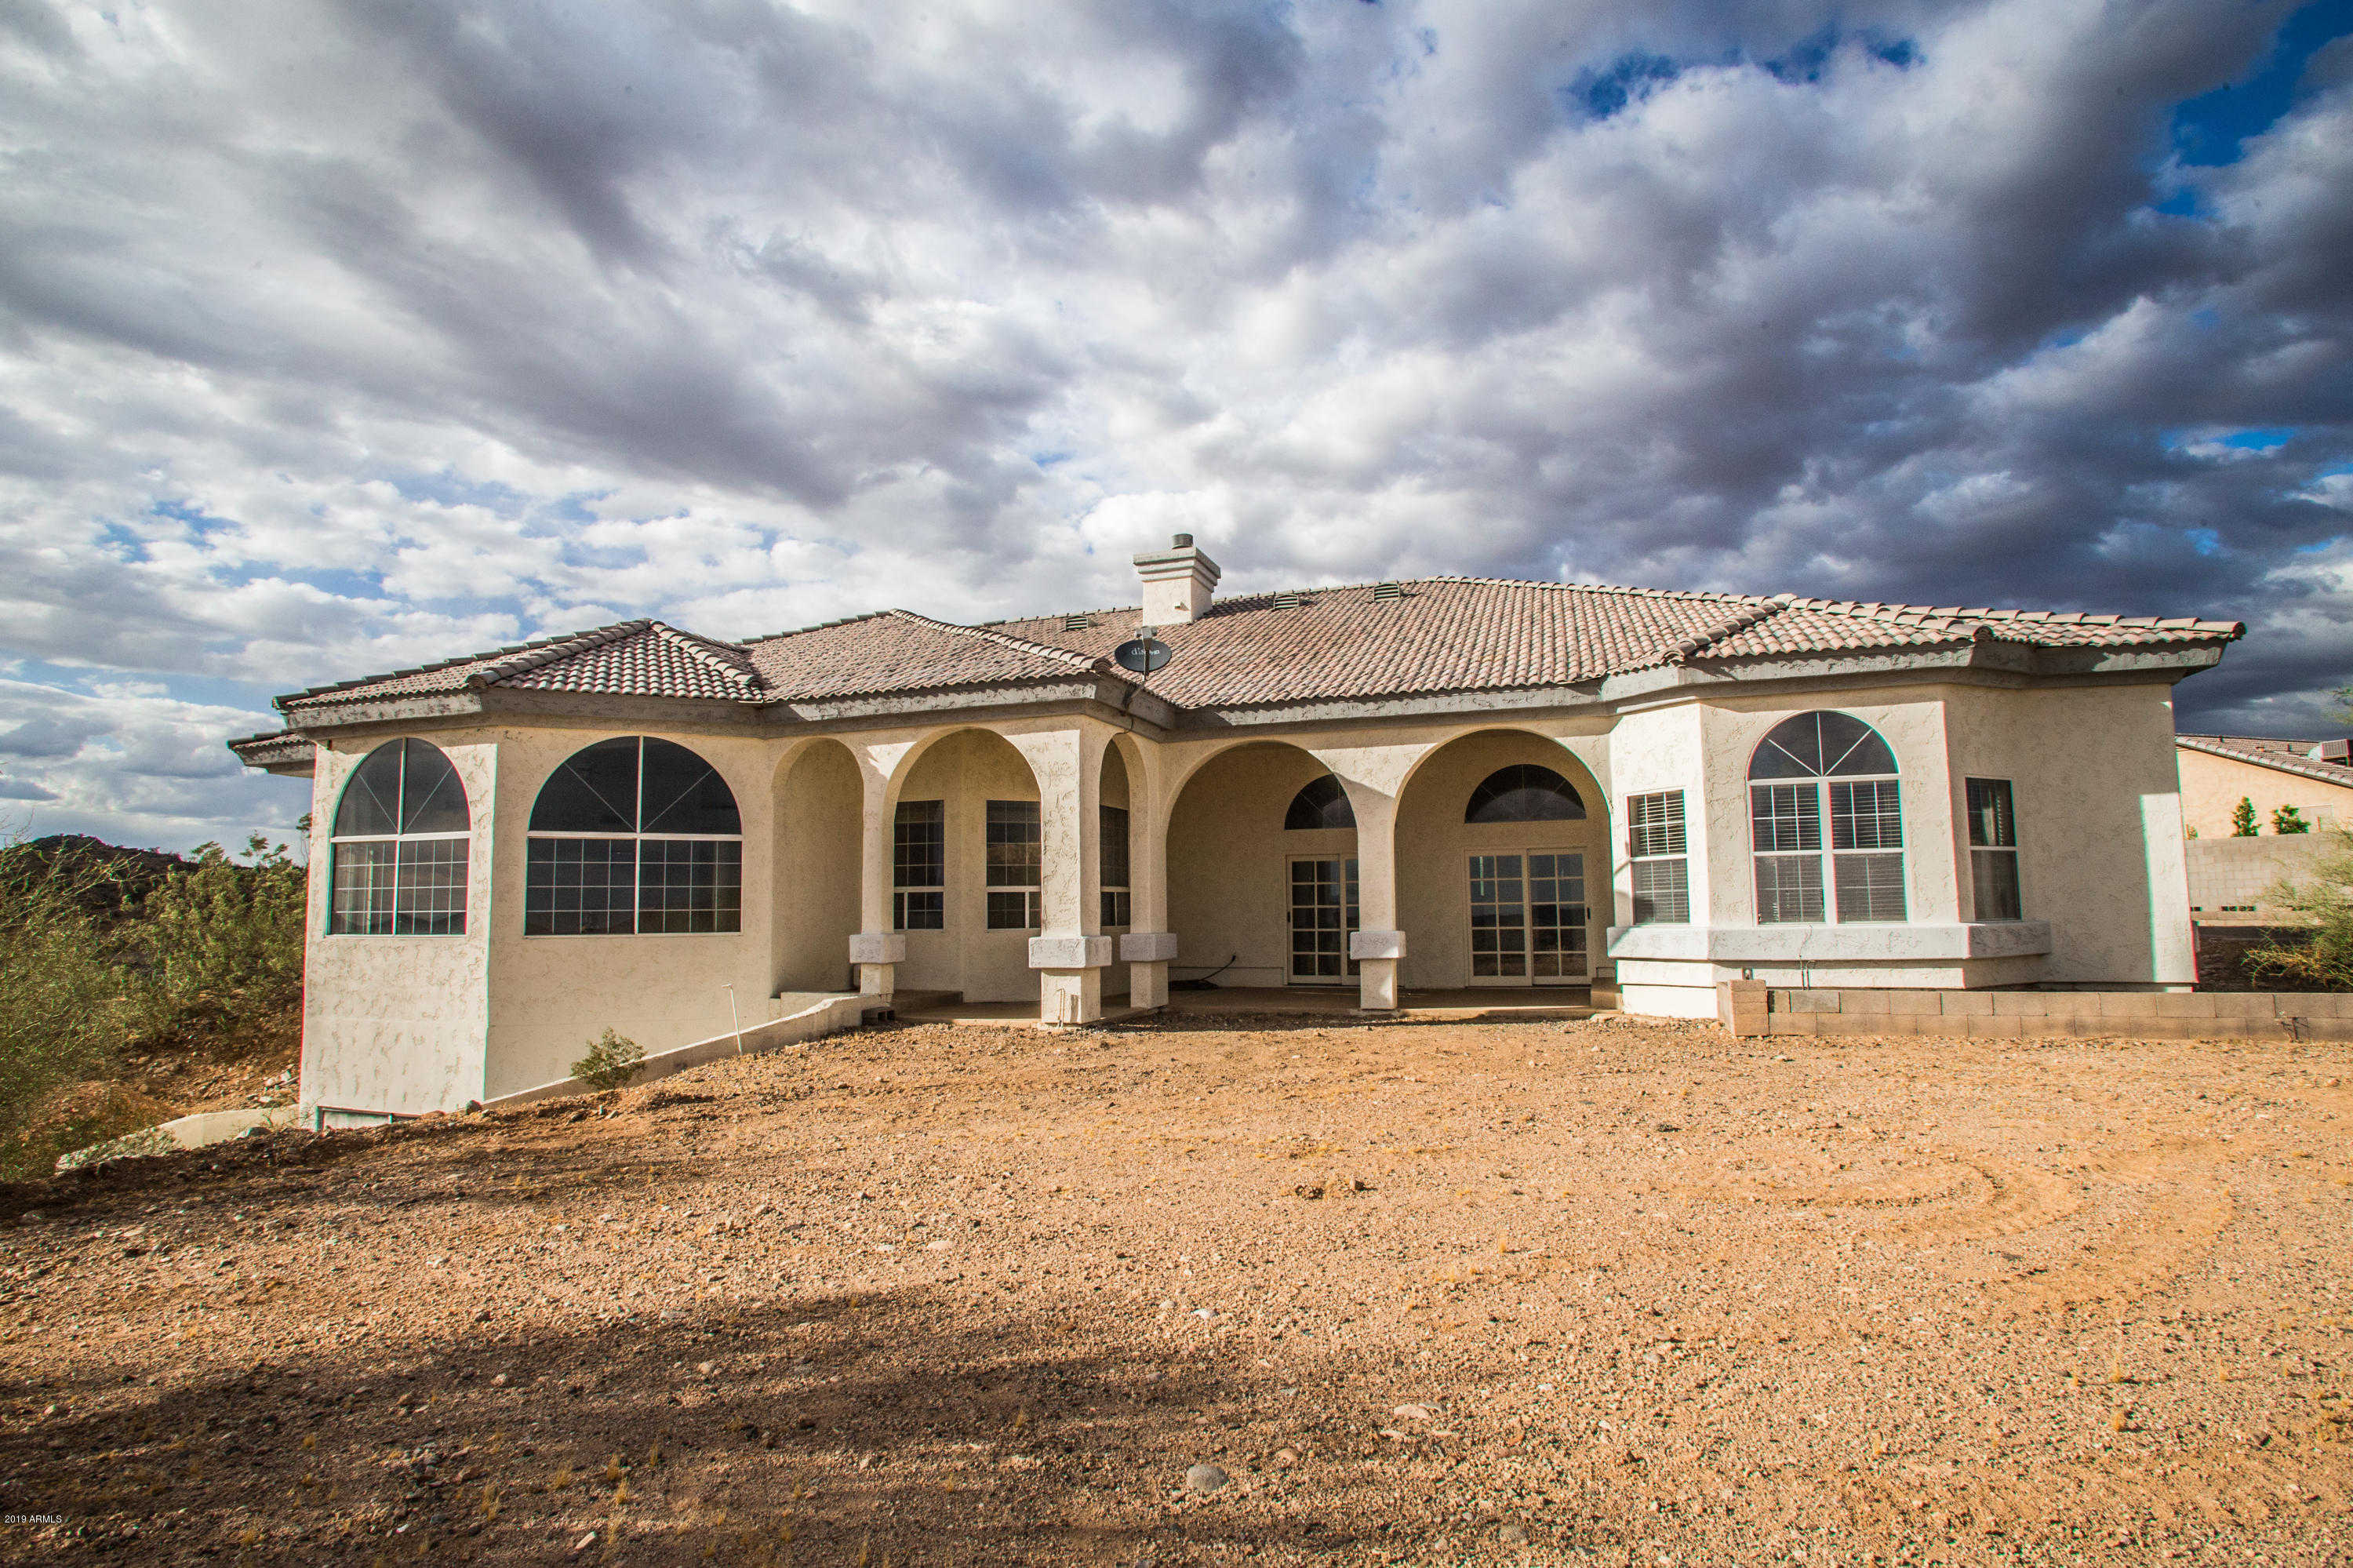 $799,000 - 3Br/4Ba - Home for Sale in N2 Sw4 Lot 2 Sec 5 Ex E 4, Peoria